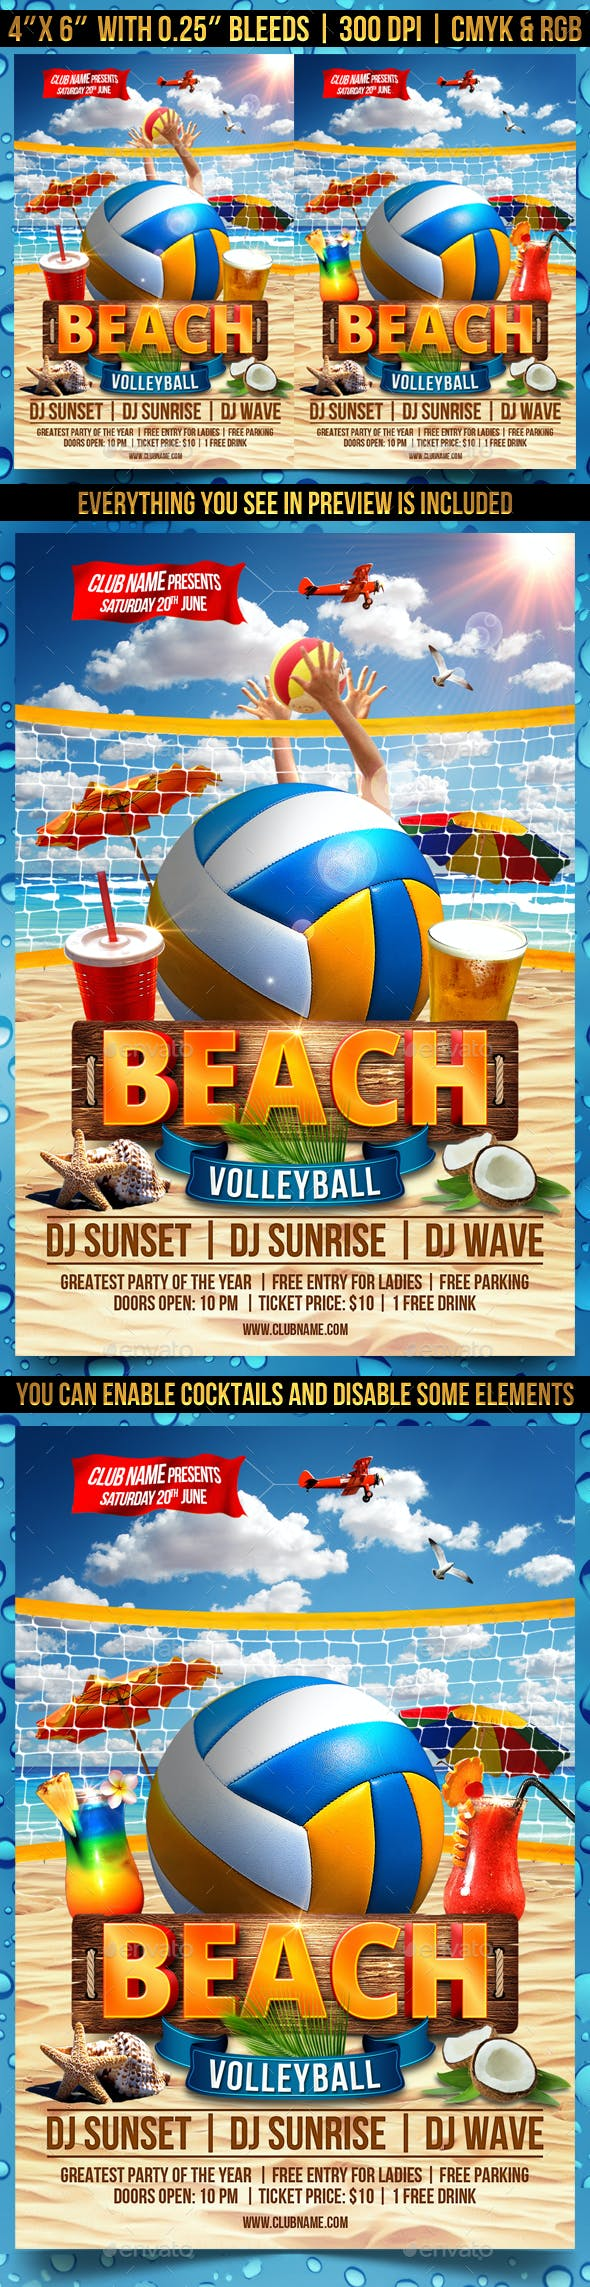 beach volleyball flyer template by gugulanul graphicriver